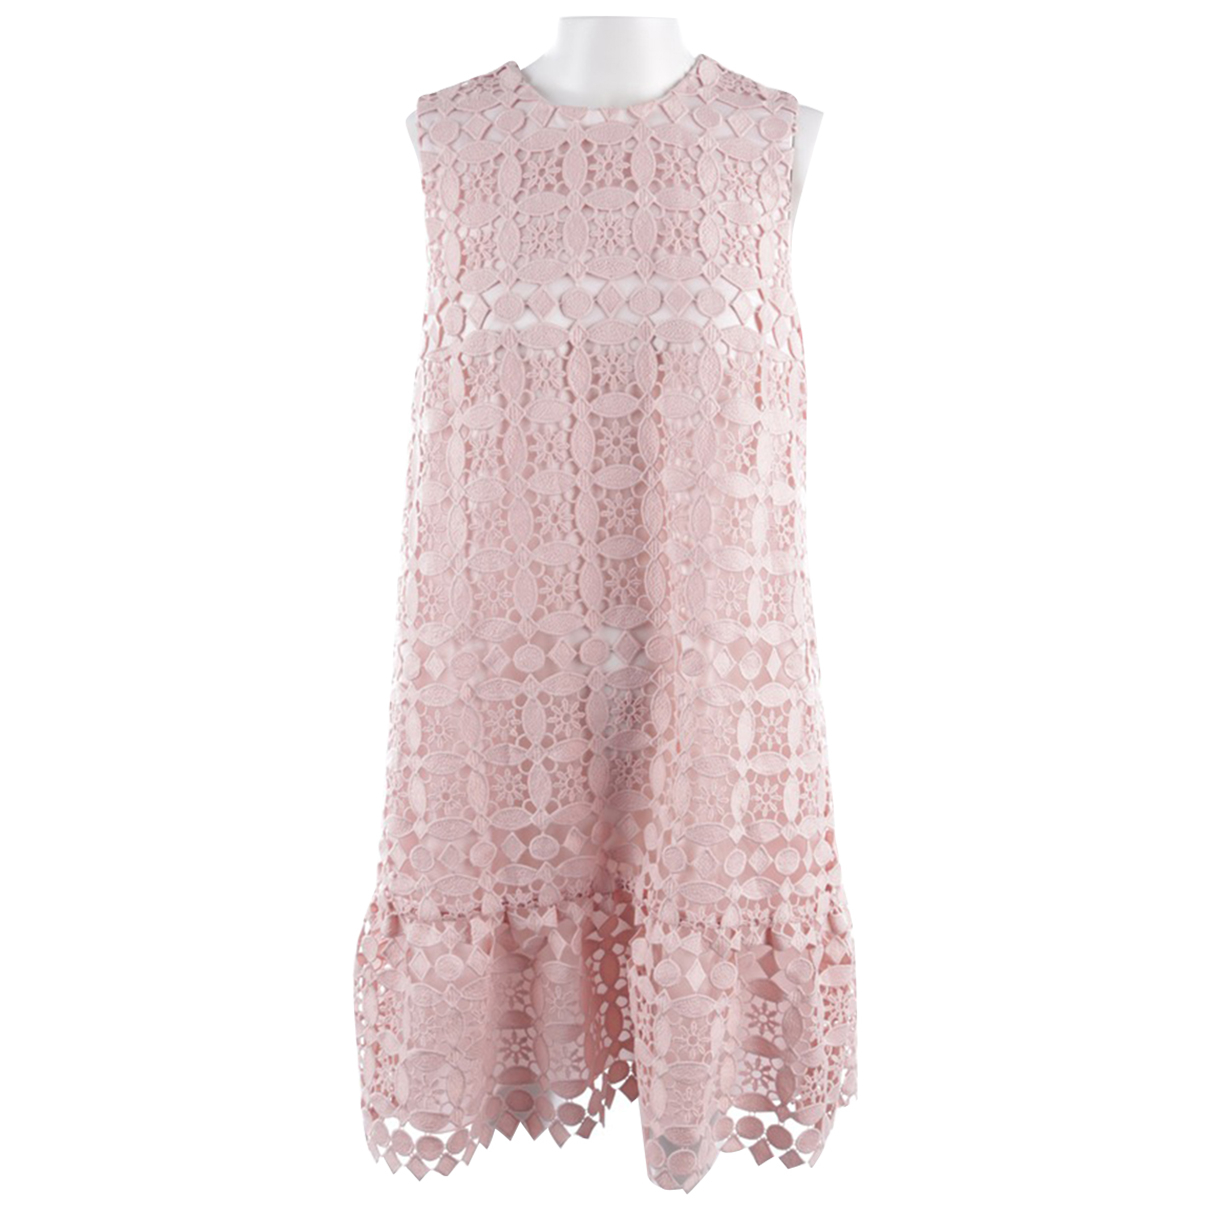 Sly010 \N Pink dress for Women 34 FR